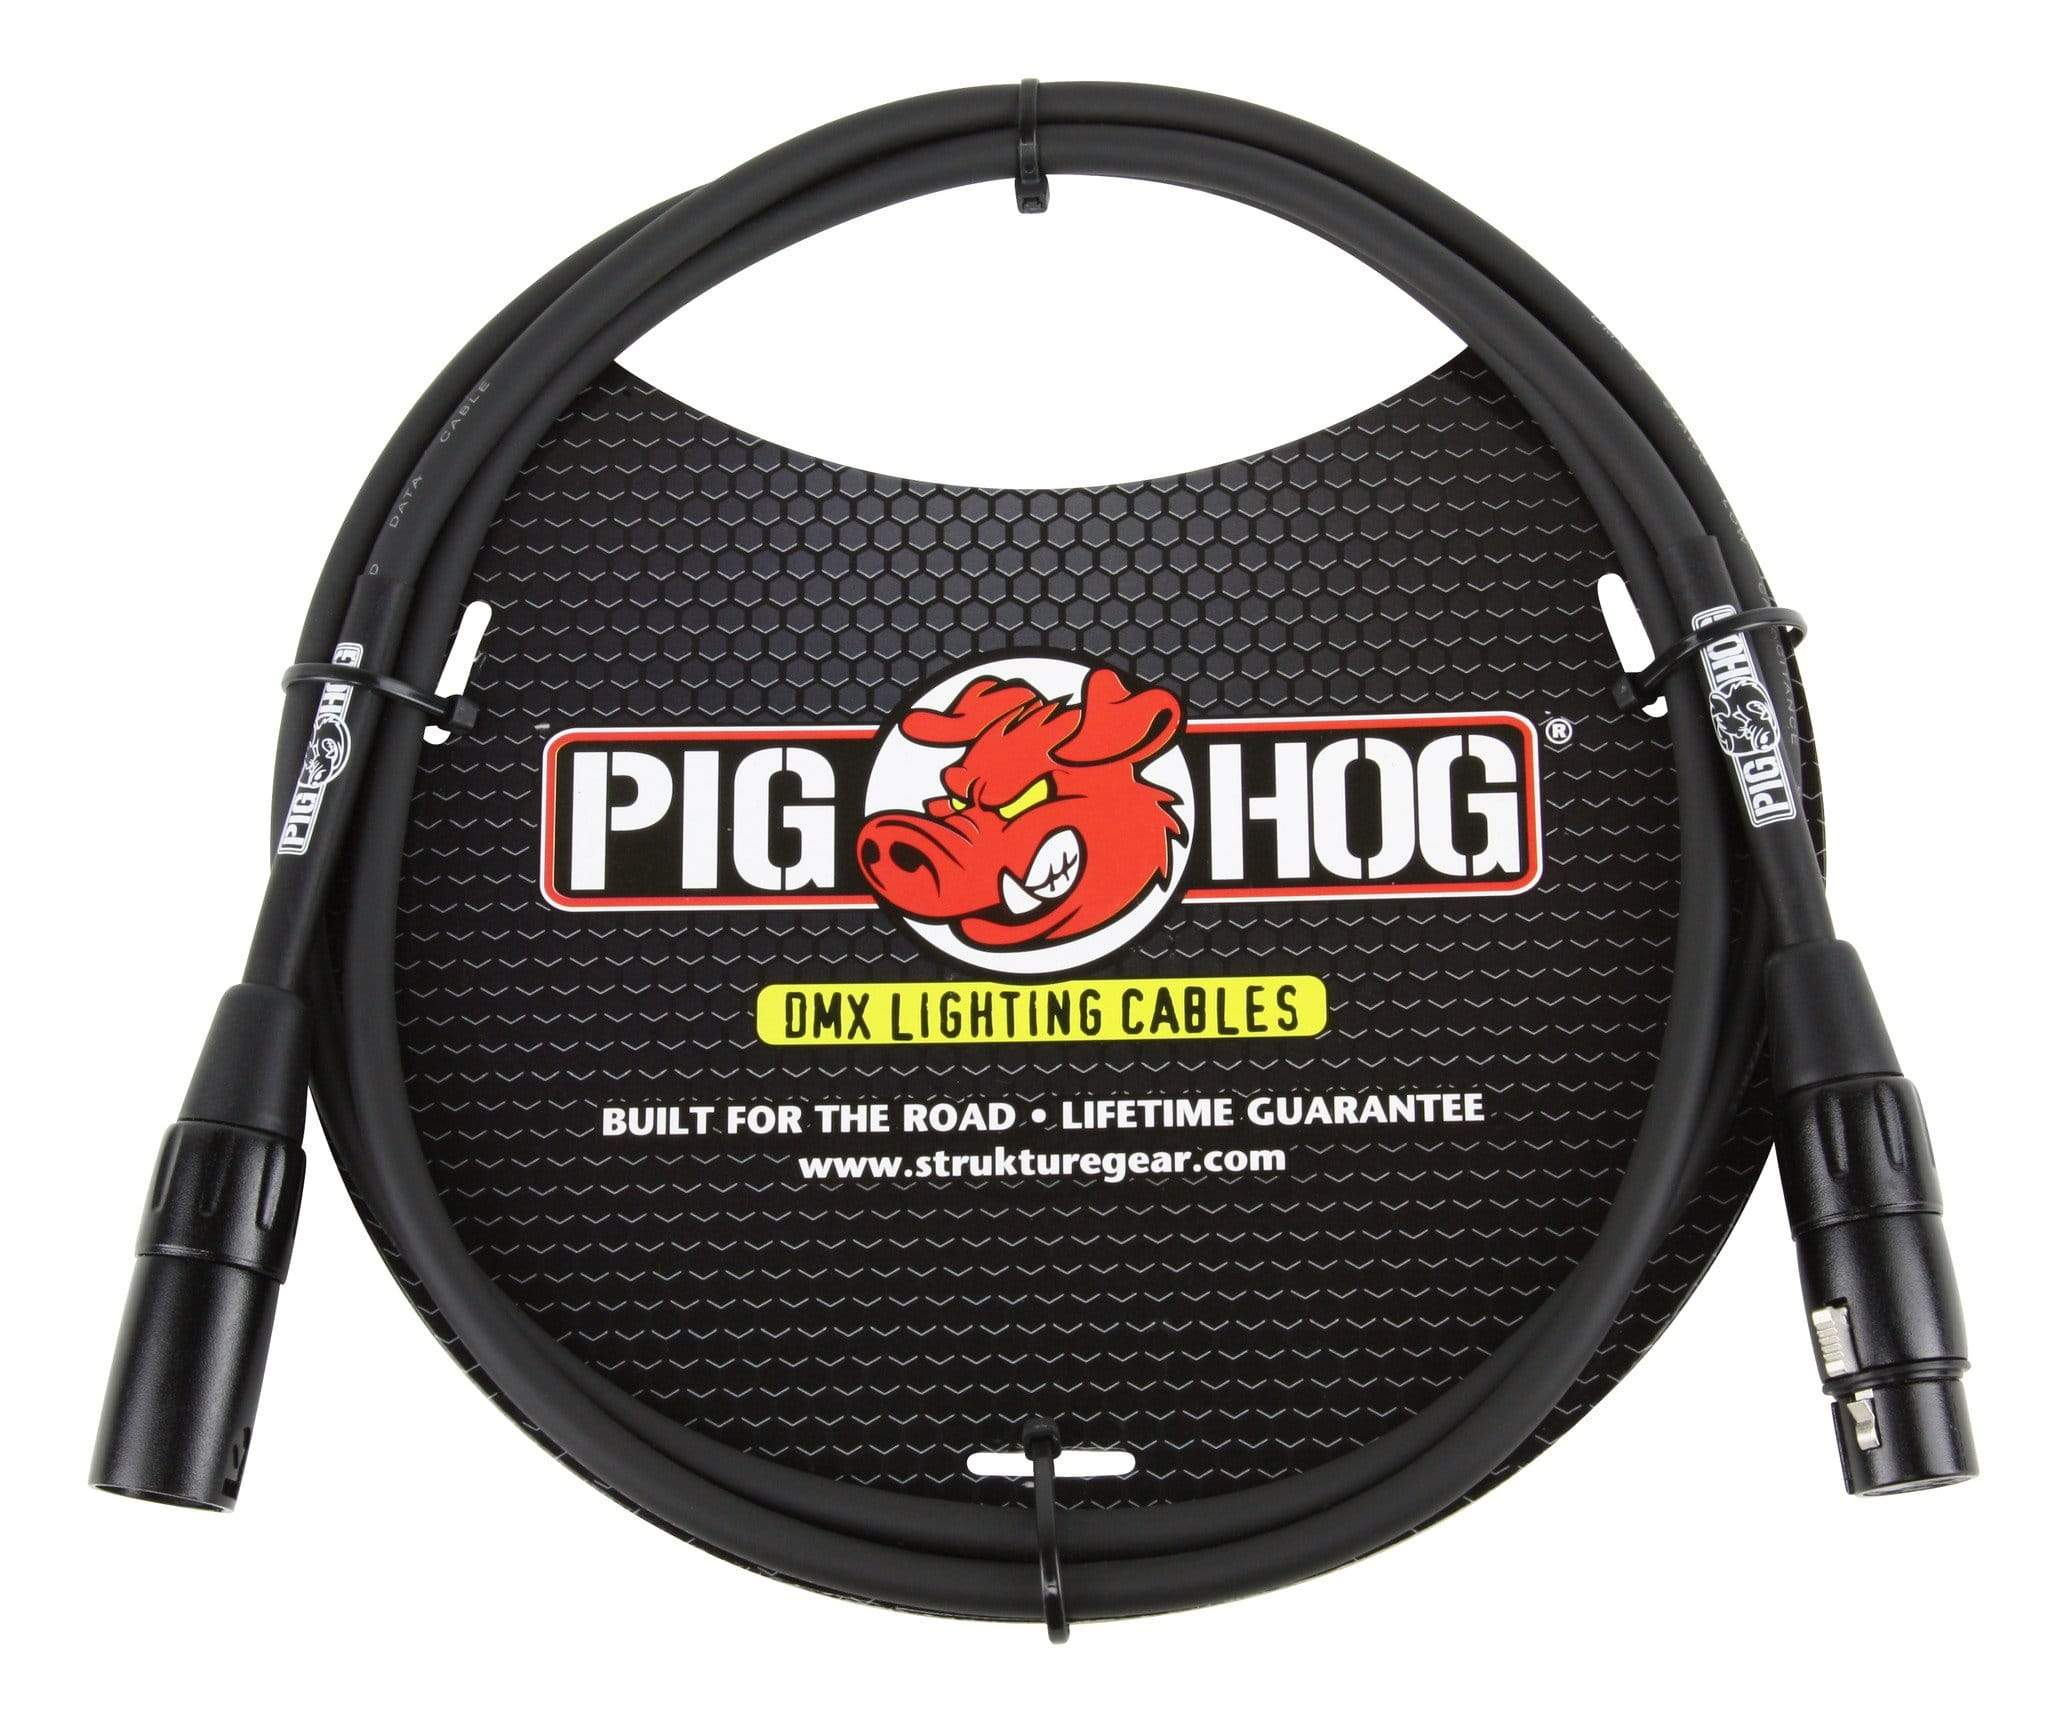 PIG HOG DMX LIGHTING Pig Hog 3-Pin DMX Lighting Equipment Data Cable 5' foot Low Capacitance